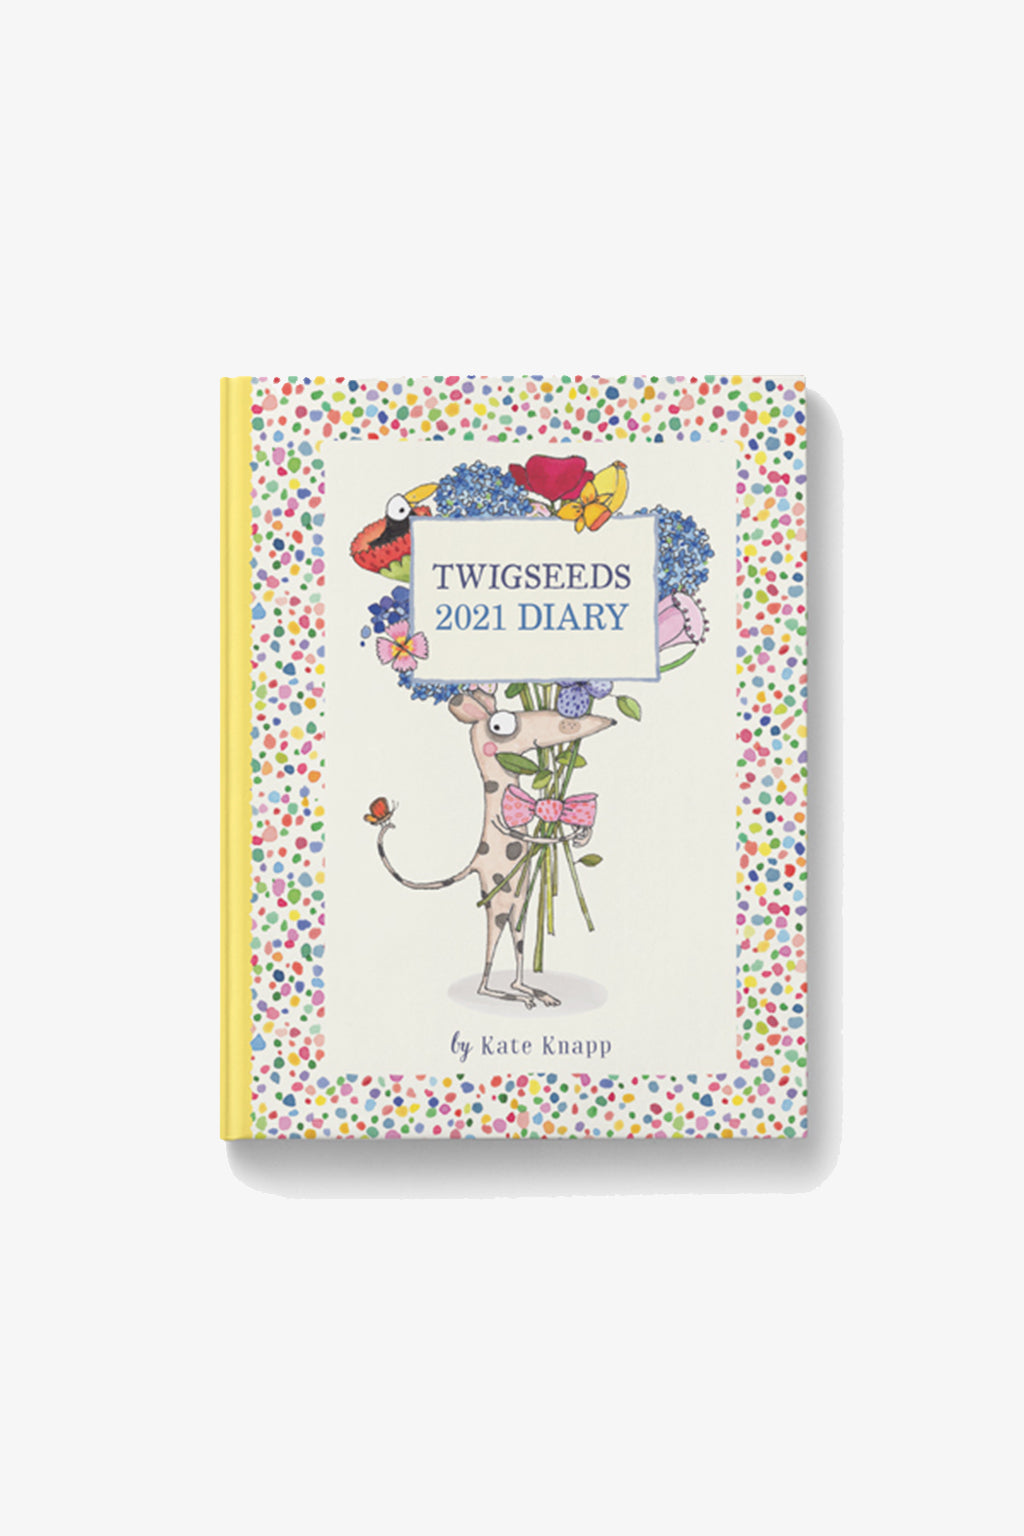 Affirmations-Twigseeds 2021 Diary-Mott and Mulberry